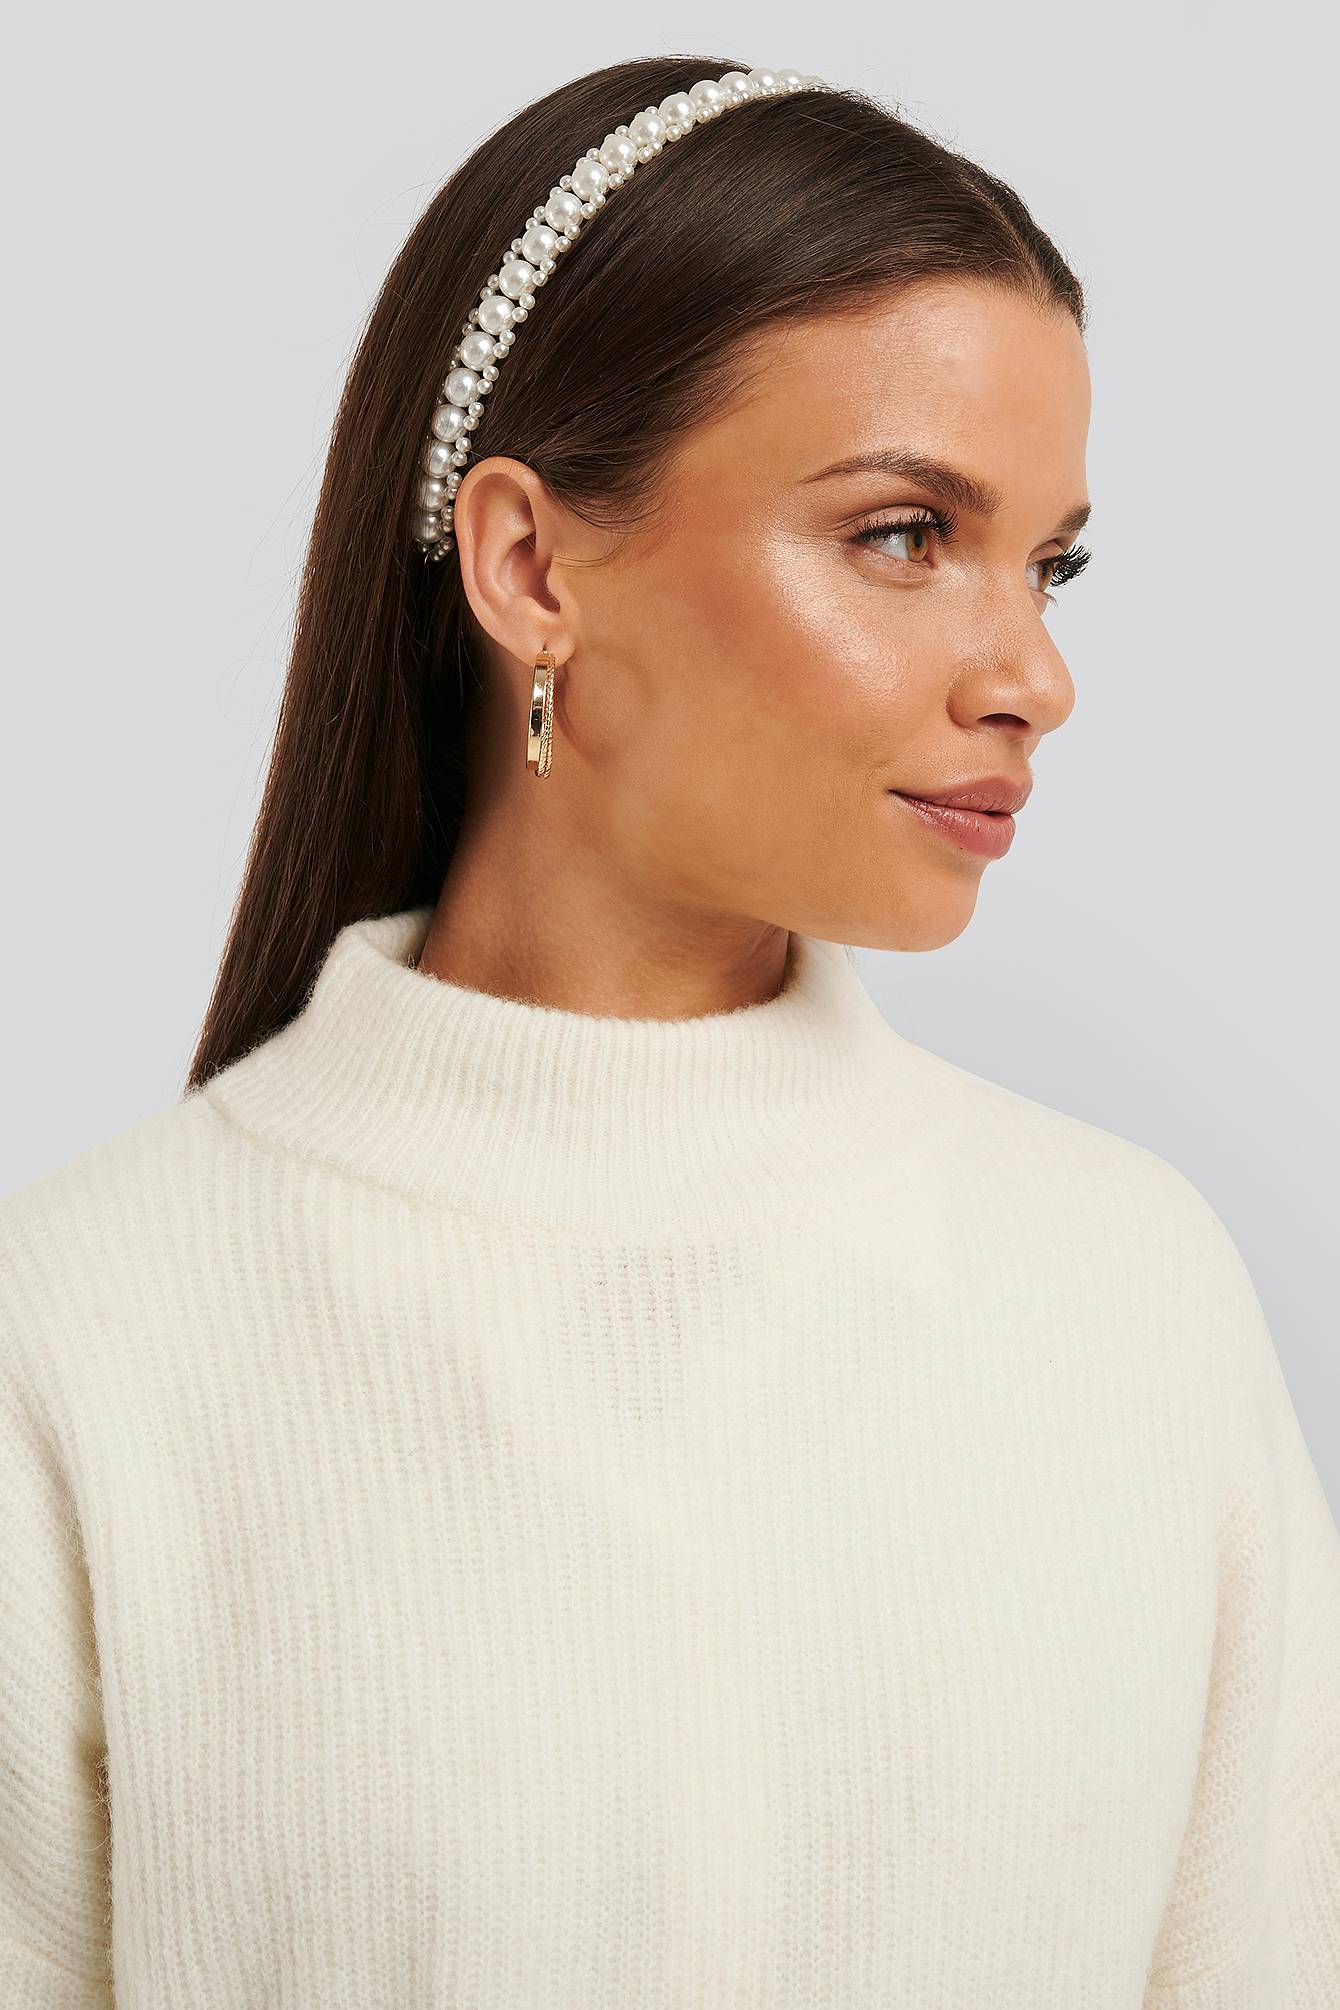 Image of NA-KD Accessories Layered Pearl Hair Hoop - White